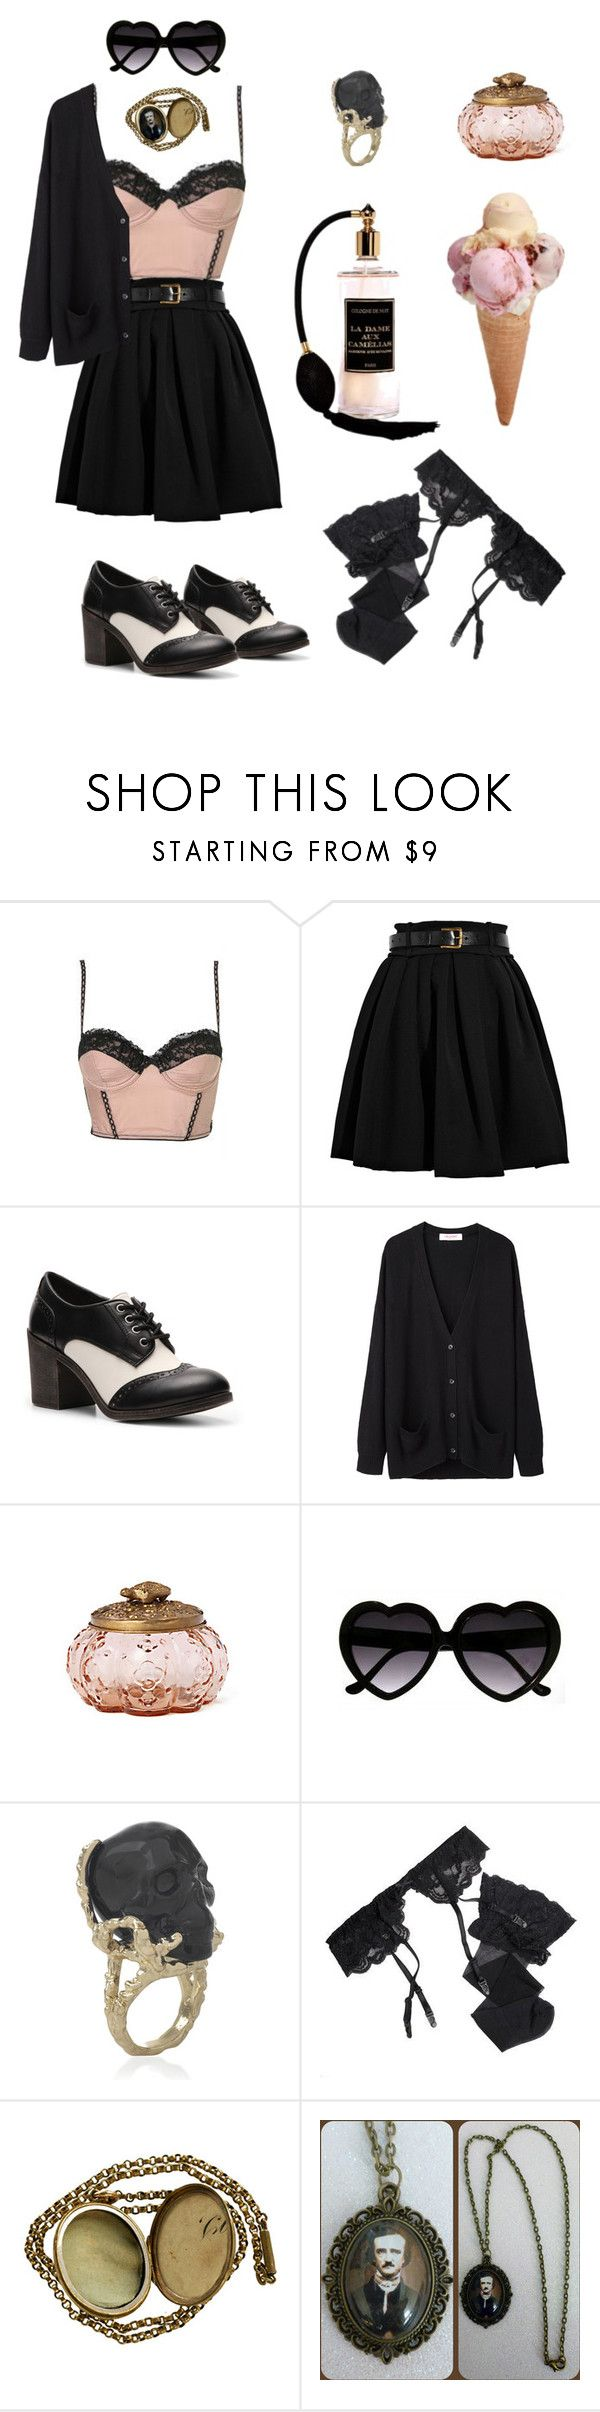 """Ice cream time!"" by my-playground-love ❤ liked on Polyvore featuring Topshop, Preen, Rock & Candy, Organic by John Patrick, Anthropologie and Reger by Janet Reger"